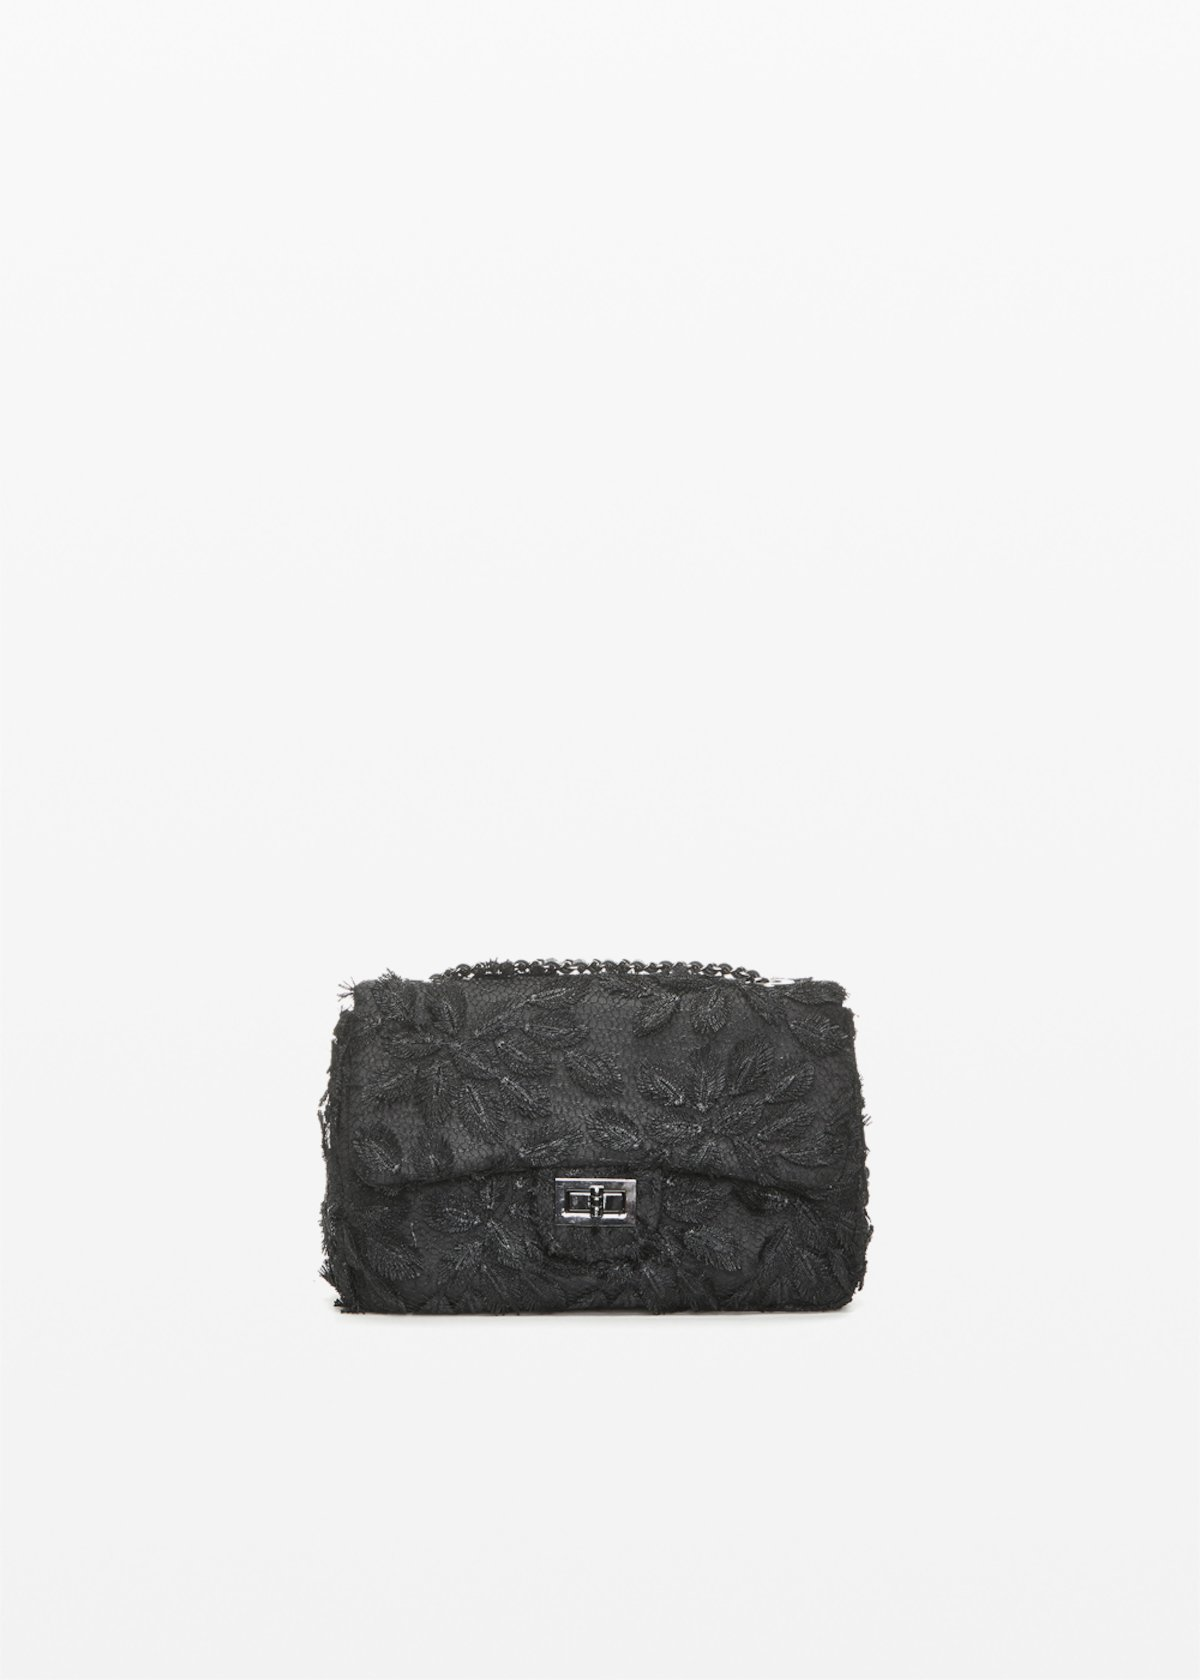 Pochette semi rigida Giadaleaf con fogliame - Black - Donna - Immagine categoria